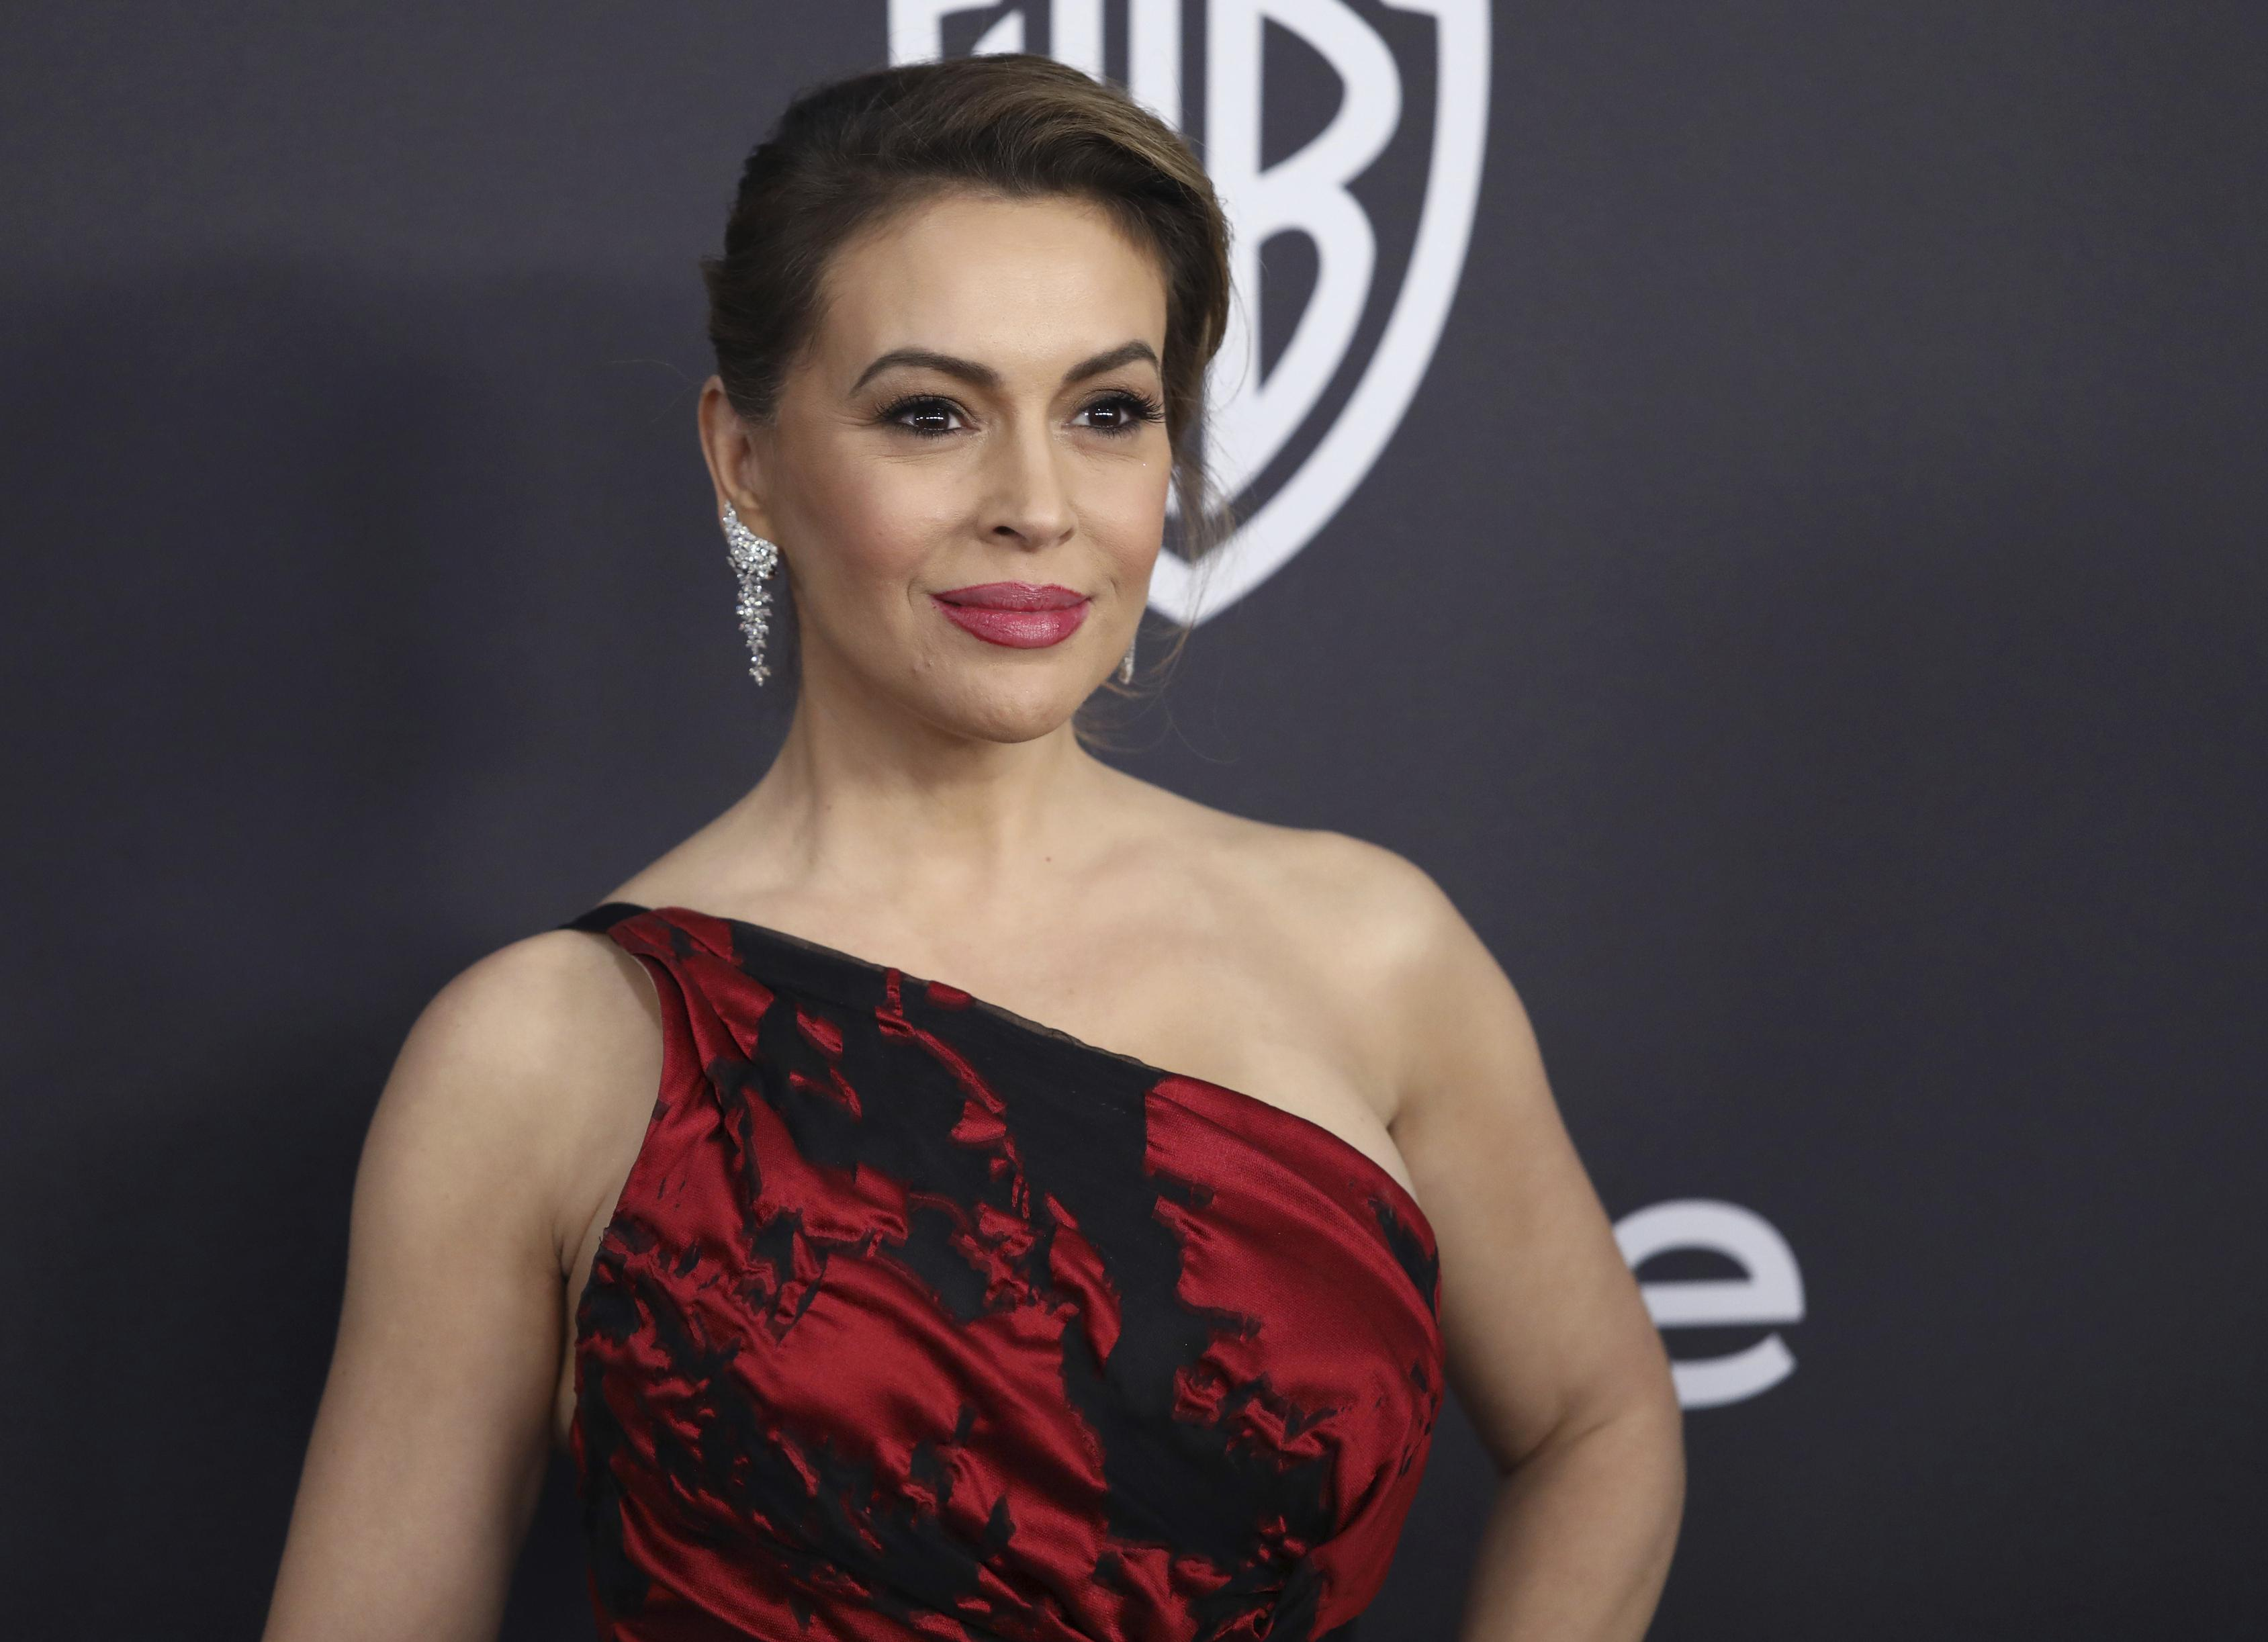 Alyssa Milano: Having two abortions in my twenties was the 'right choice'